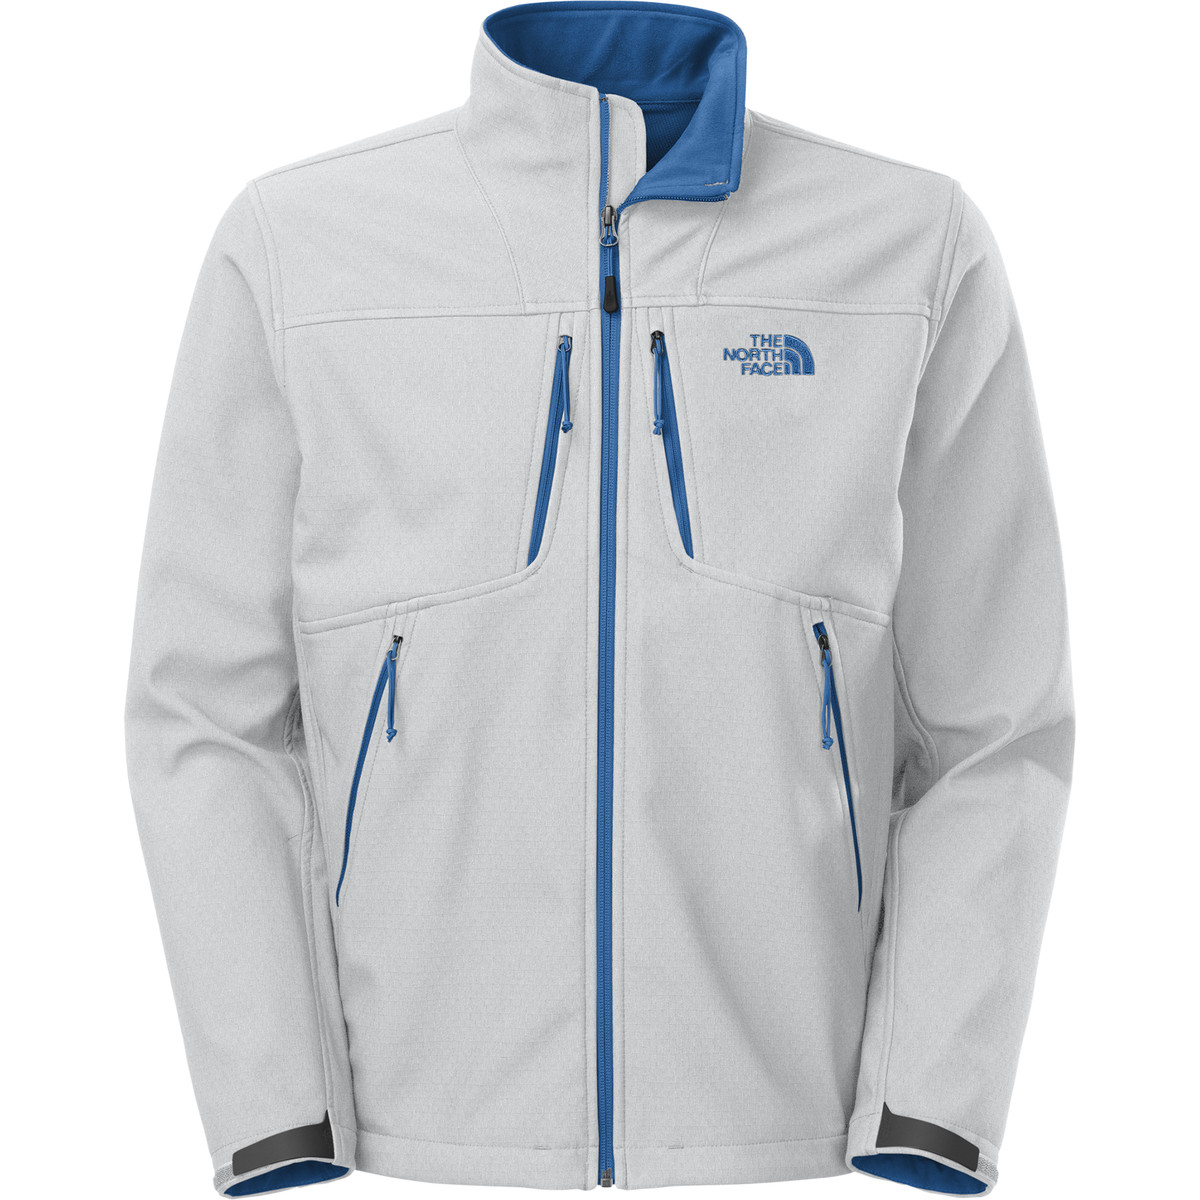 The North Face Cabatto Jacket